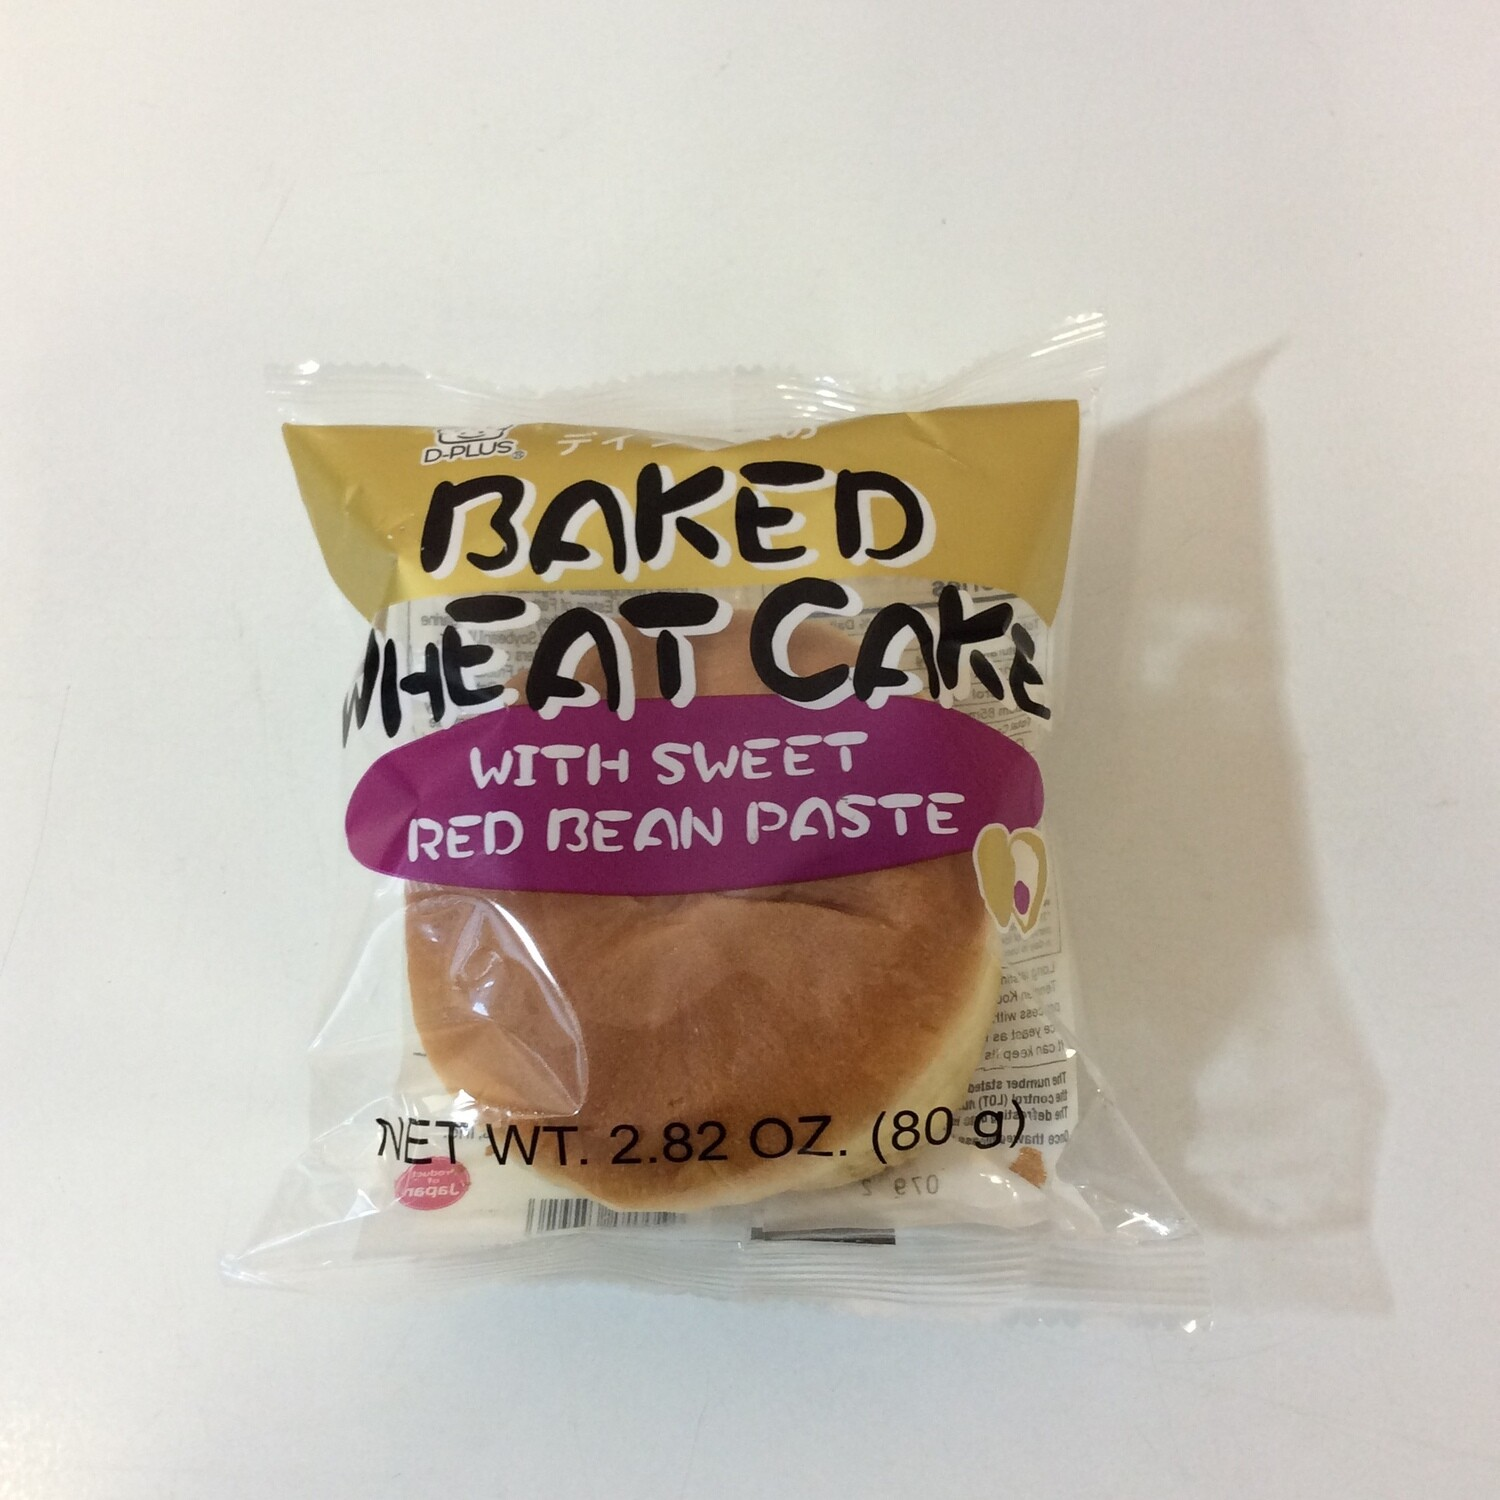 D-Plus Baked Wheat Cake Red Bean